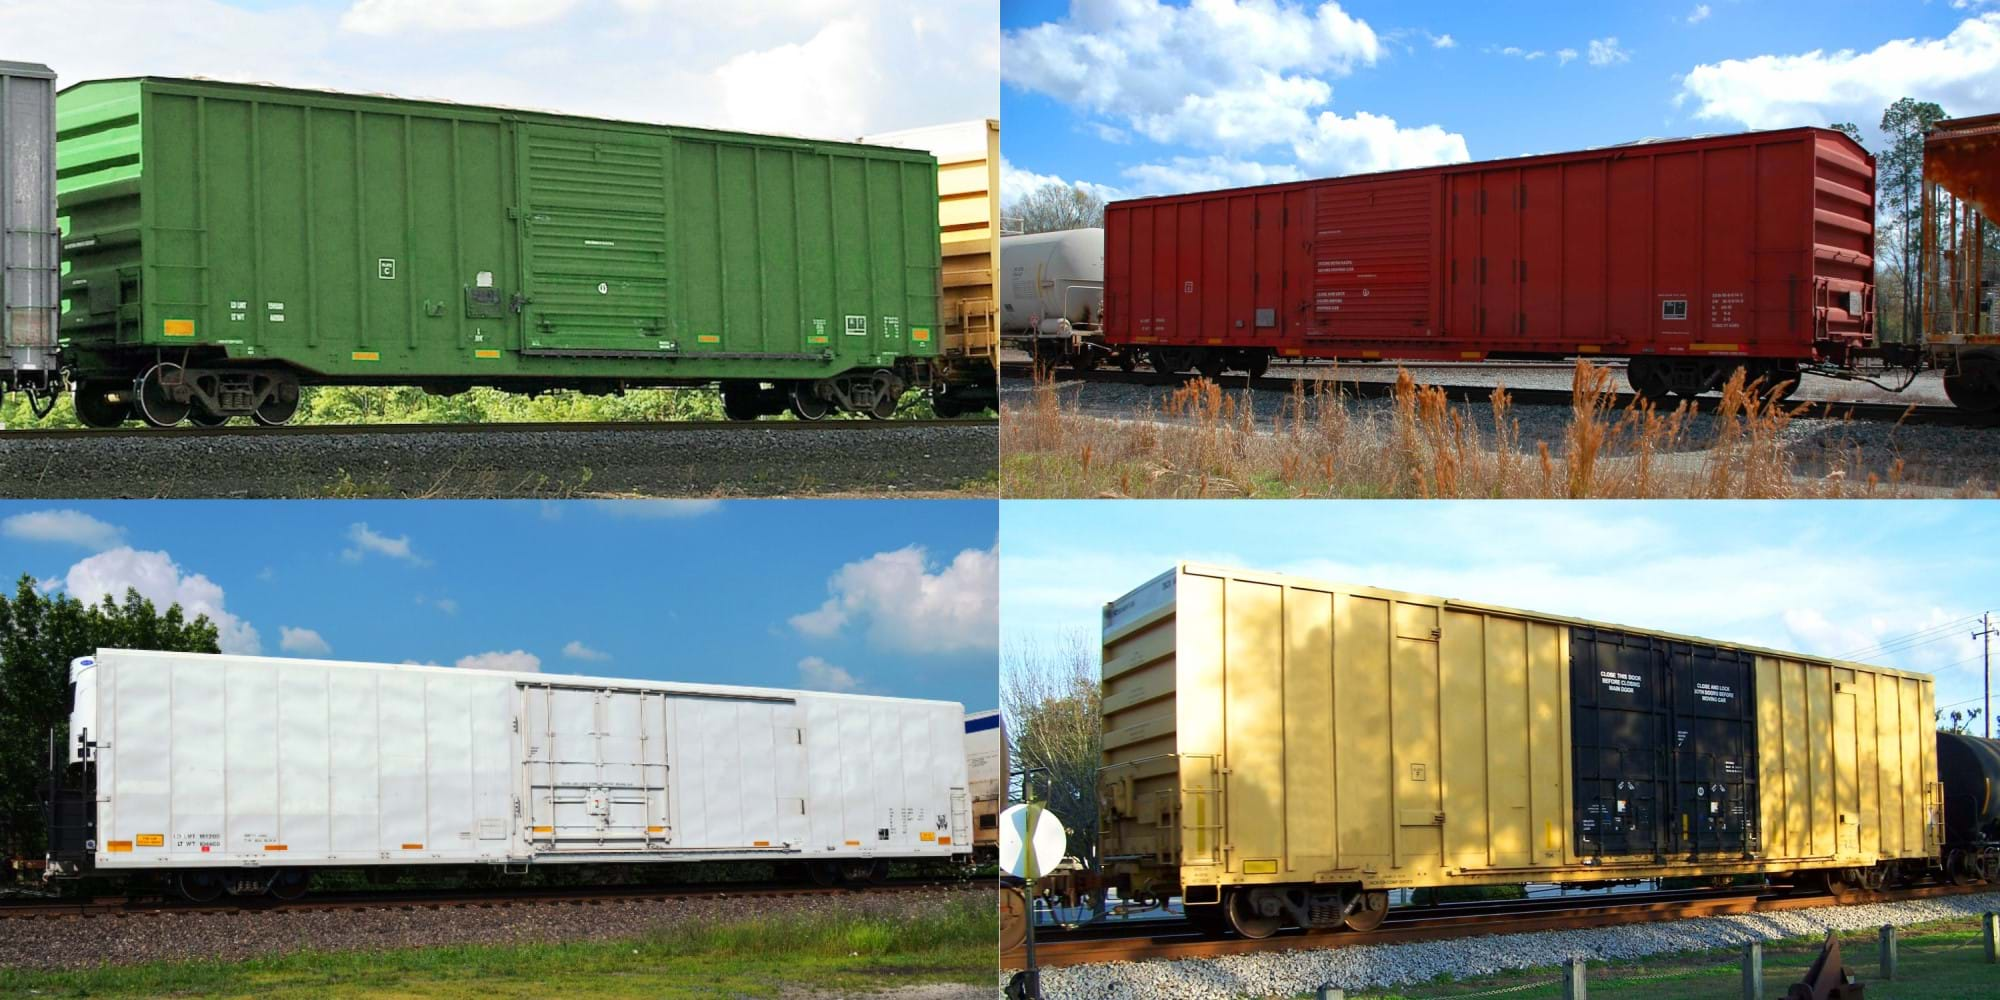 A 4-section photo of railcar boxcars that consists of 50 feet standard boxcar, 60 feet standard boxcar, refrigerated boxcar, and 60 feet hi-cube boxcar